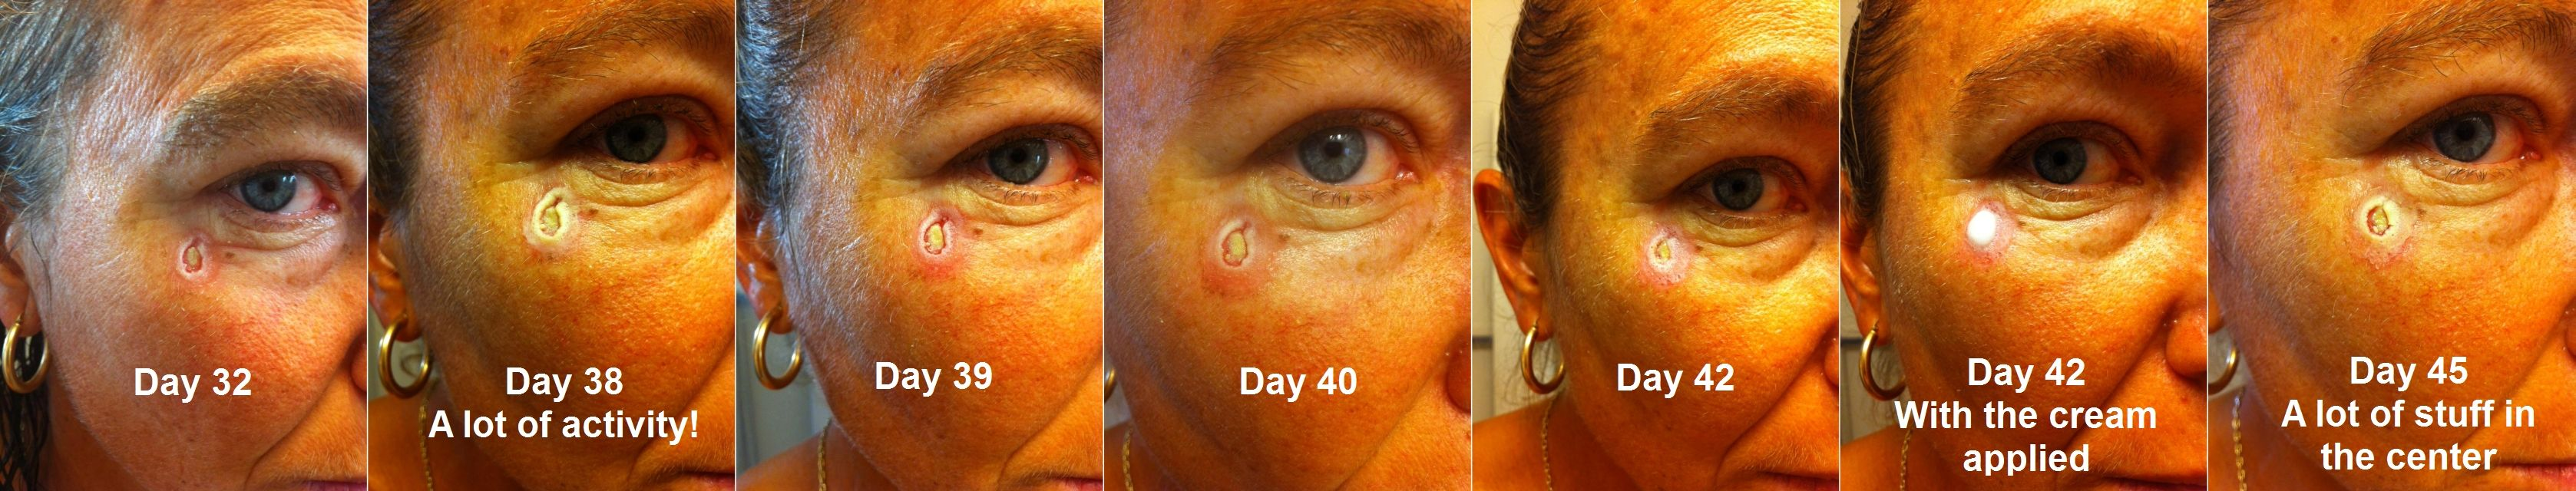 Natural Treatment Of Basal Cell Carcinoma With Curaderm